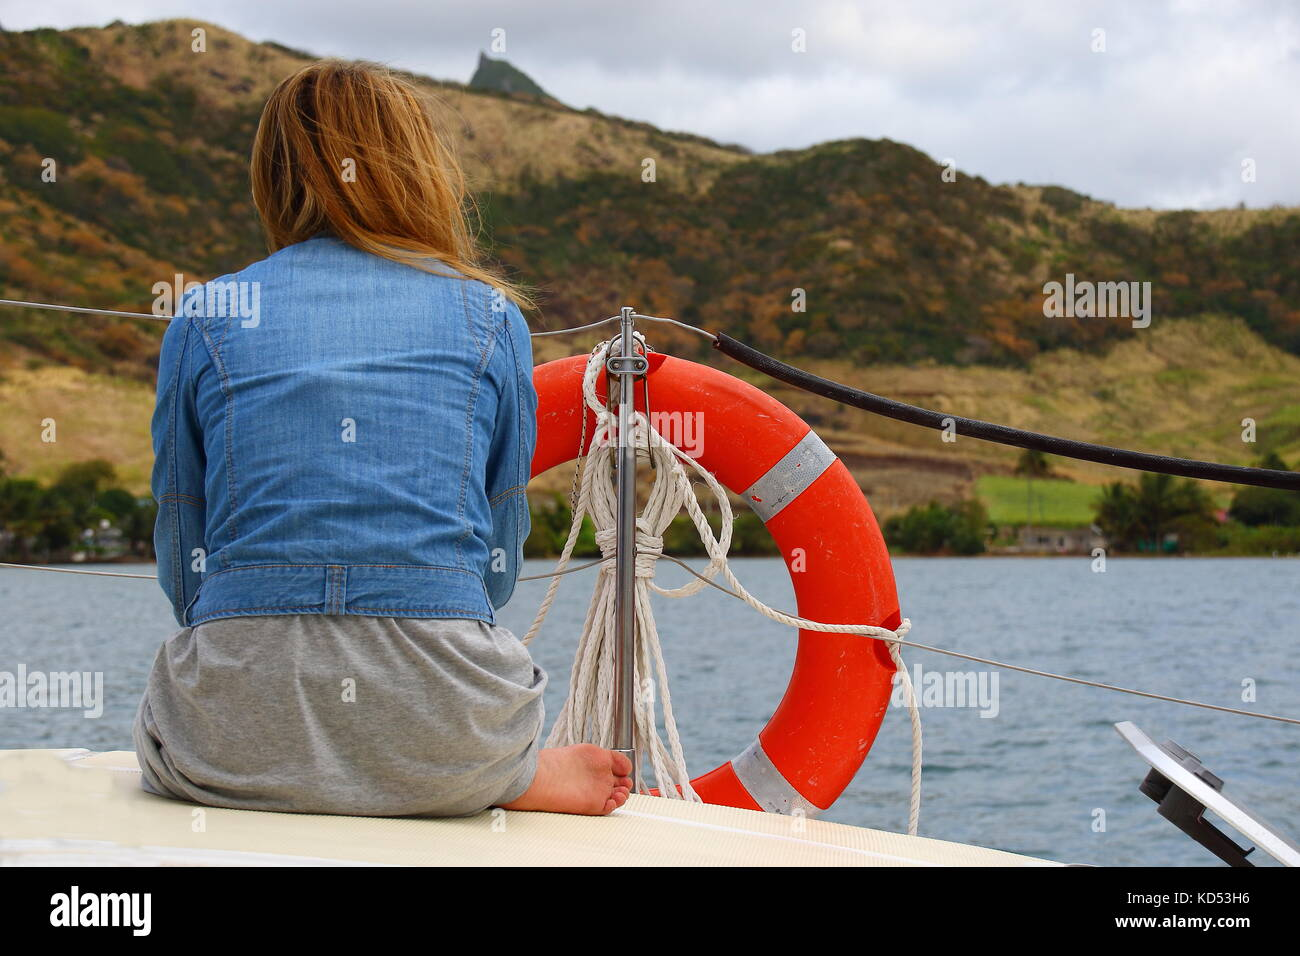 Ile aux Cerfs, Mauritius - unidentified young woman on the deck of a yacht on a blustery day in landscape format - Stock Image